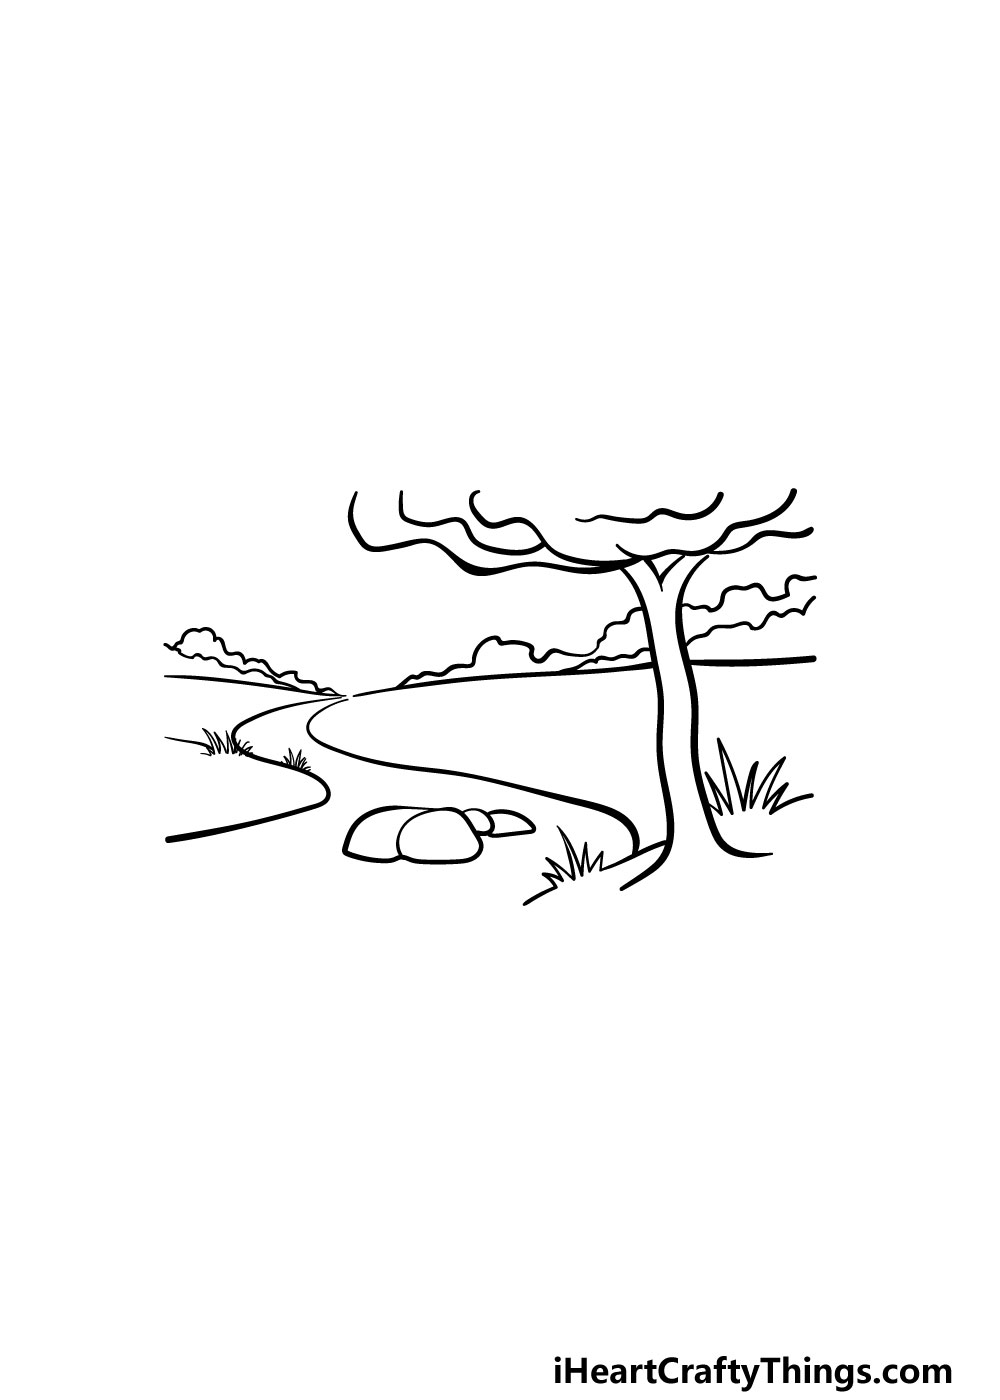 drawing a river step 6